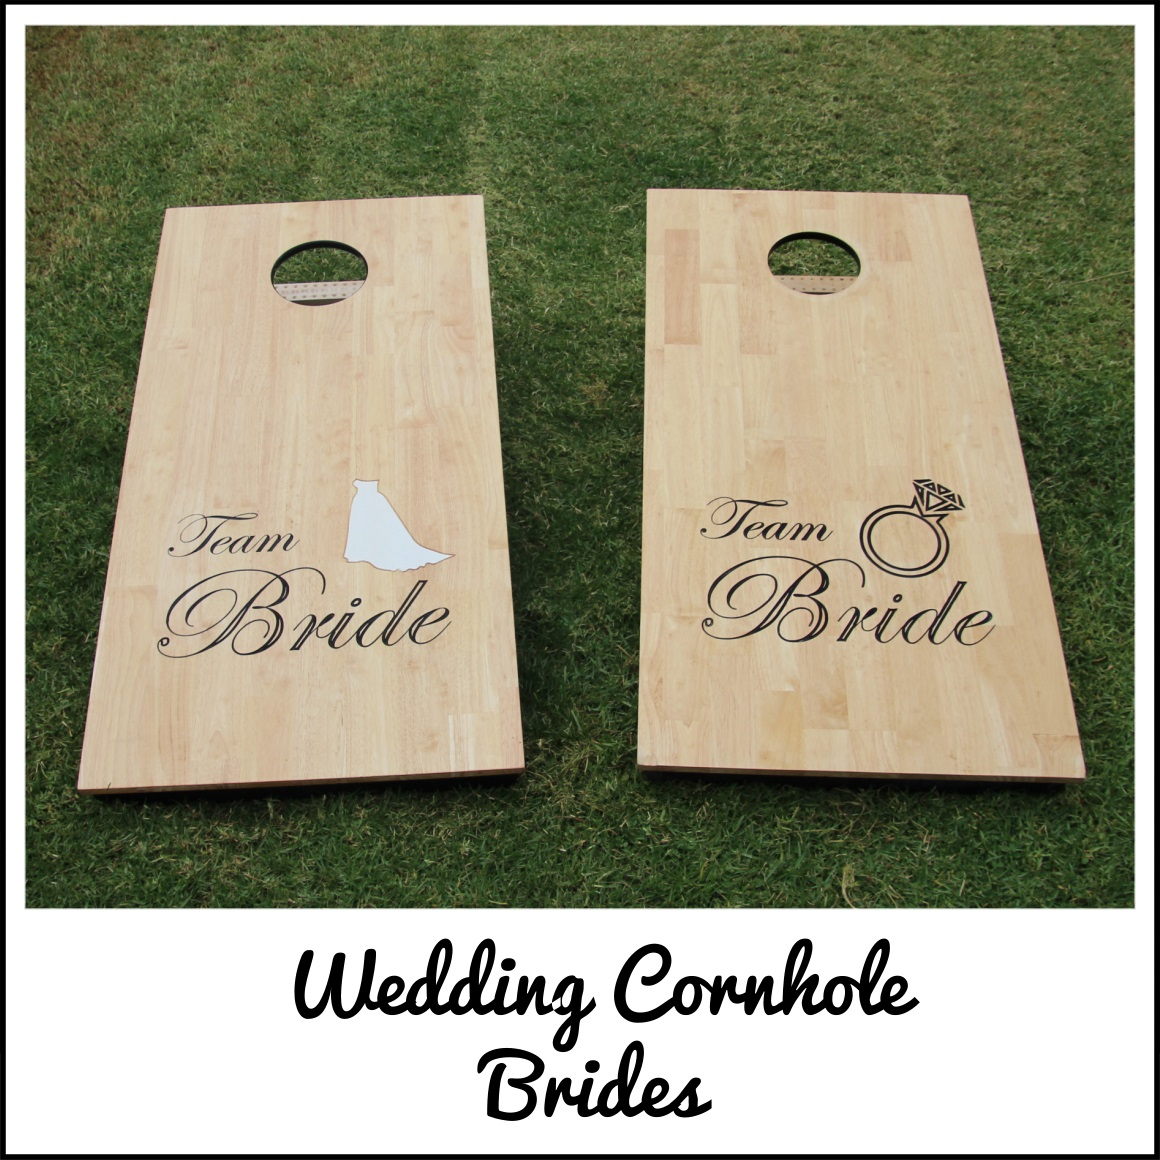 Wedding Cornhole Brides